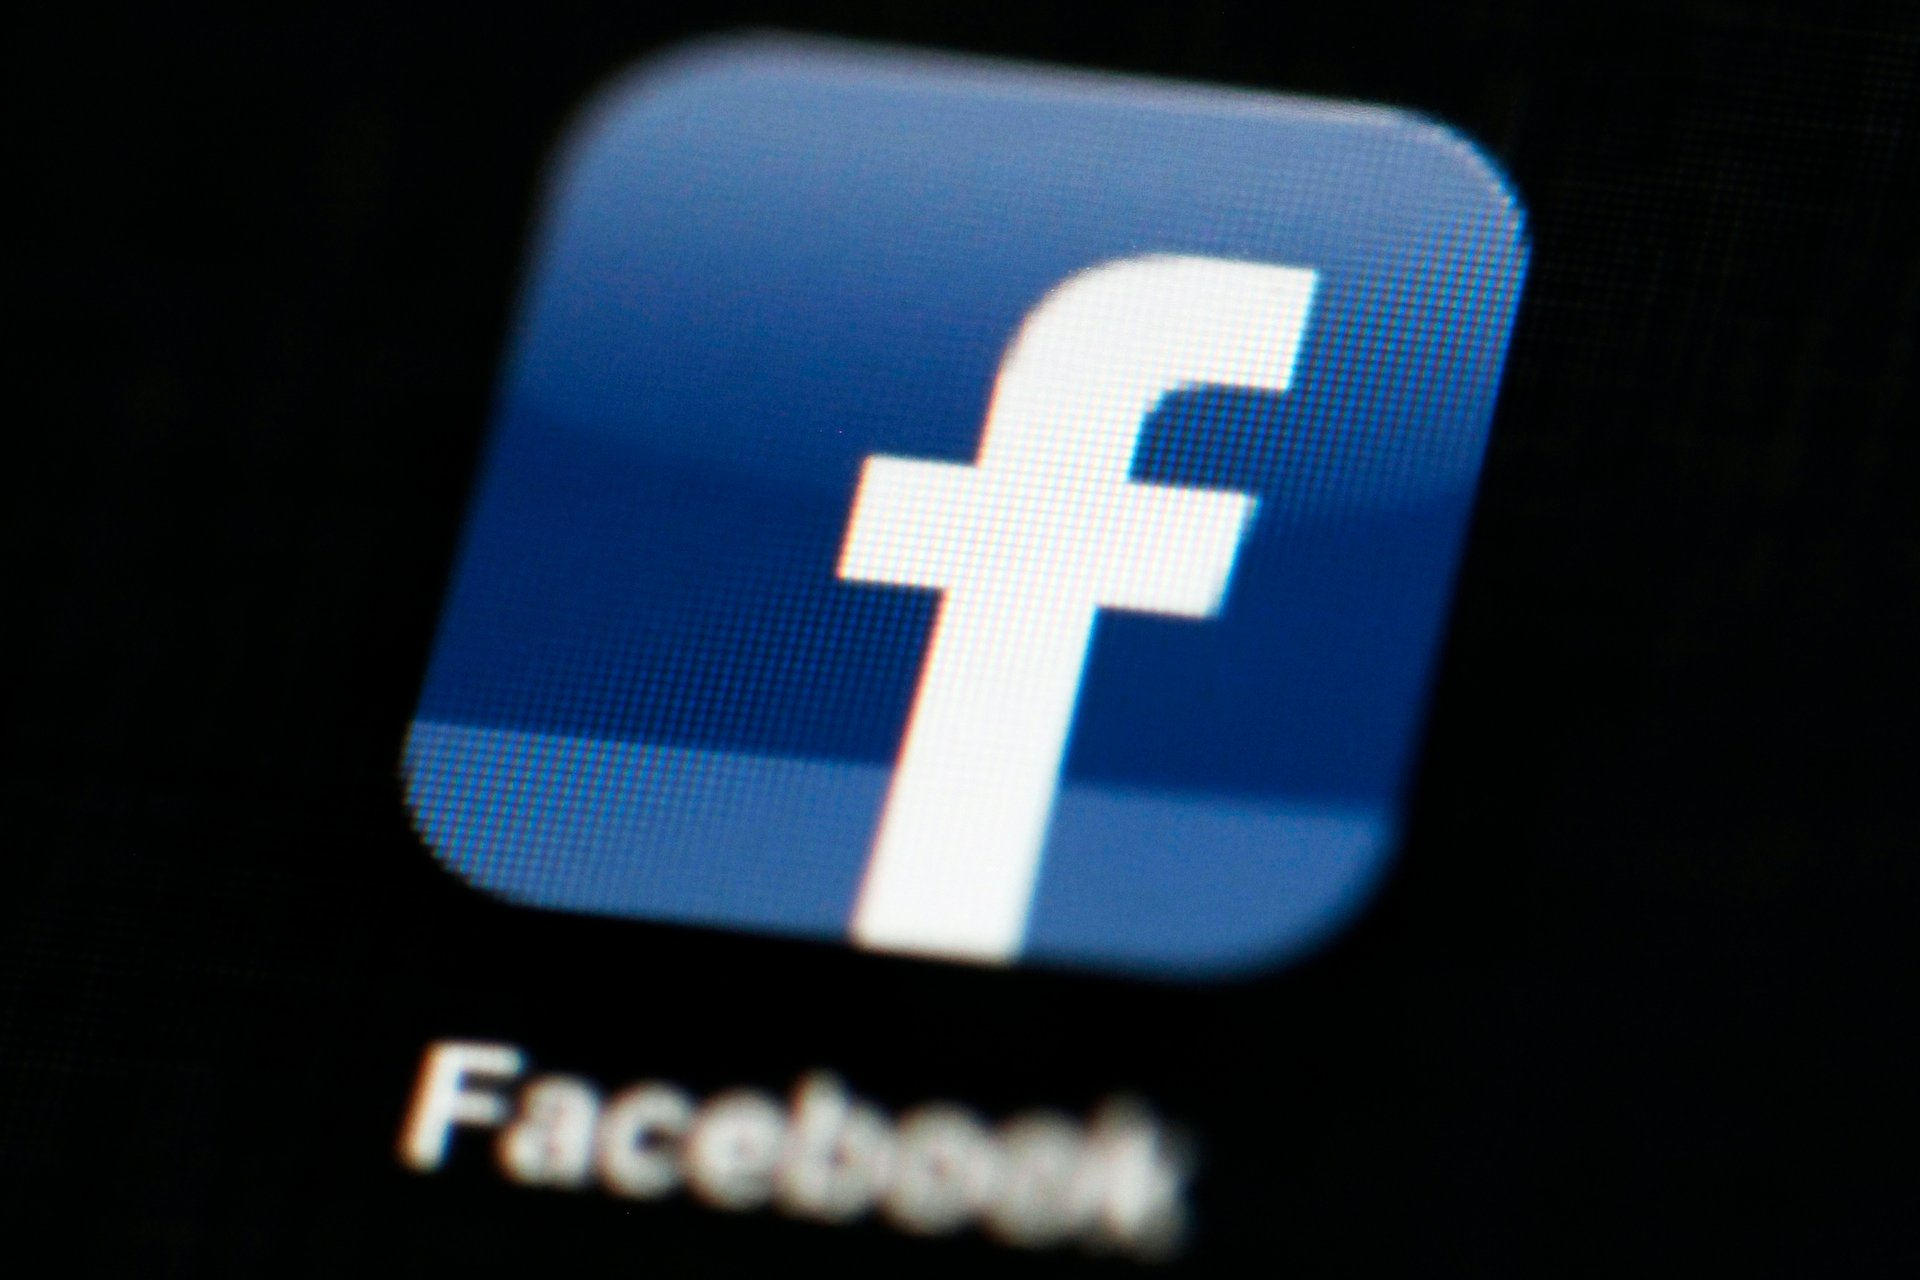 This May 16, 2012 file photo shows the Facebook app logo on a mobile device in Philadelphia. On Monday, Oct. 12, 2020, Facebook announced it is banning posts that deny or distort the Holocaust. (AP Photo / Matt Rourke, File)